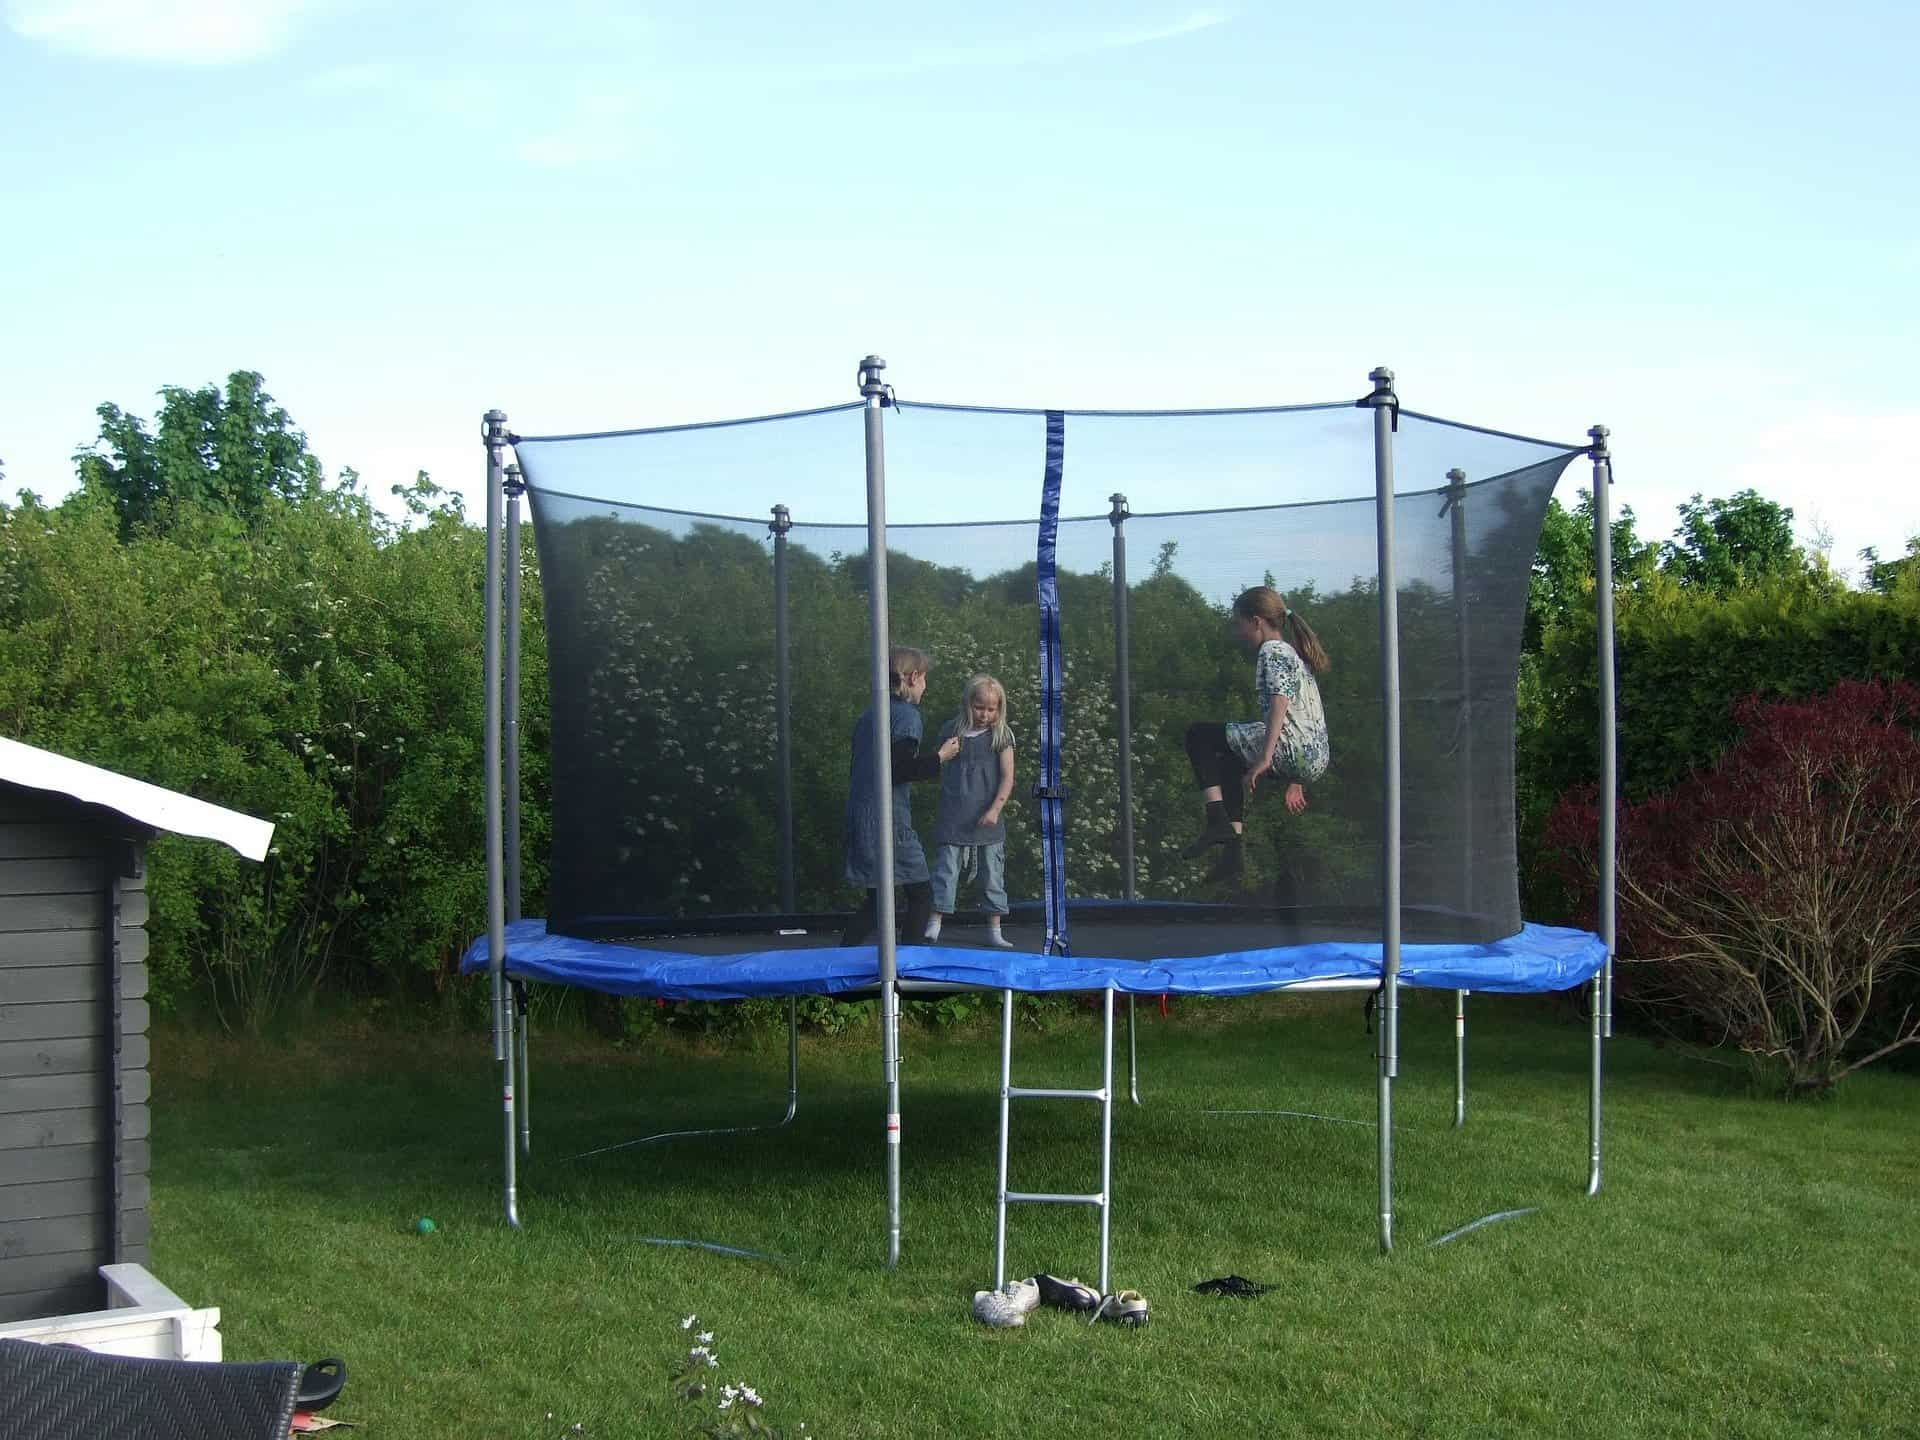 What size of trampoline should i get?